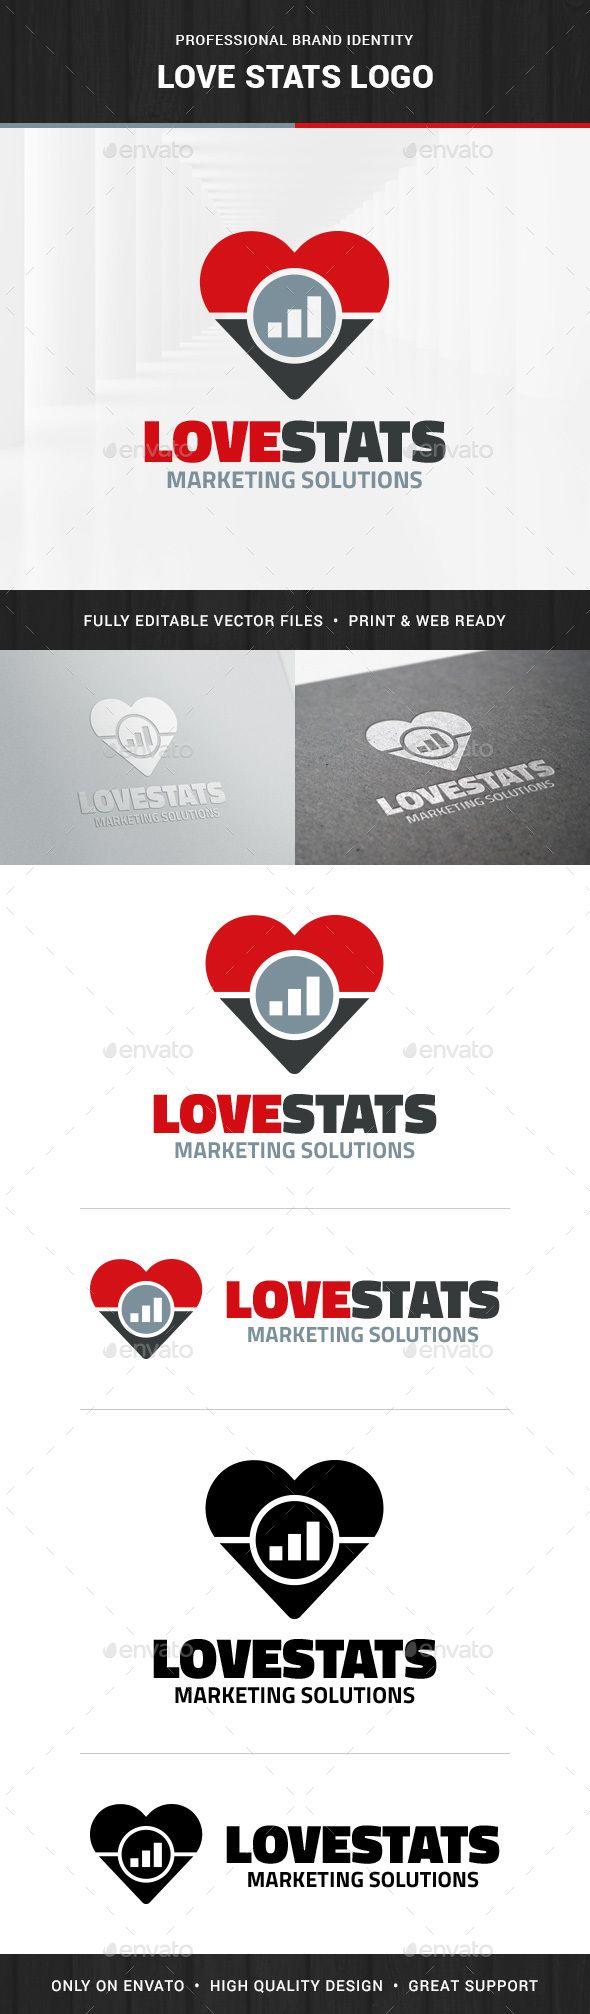 Love Stats Logo Template